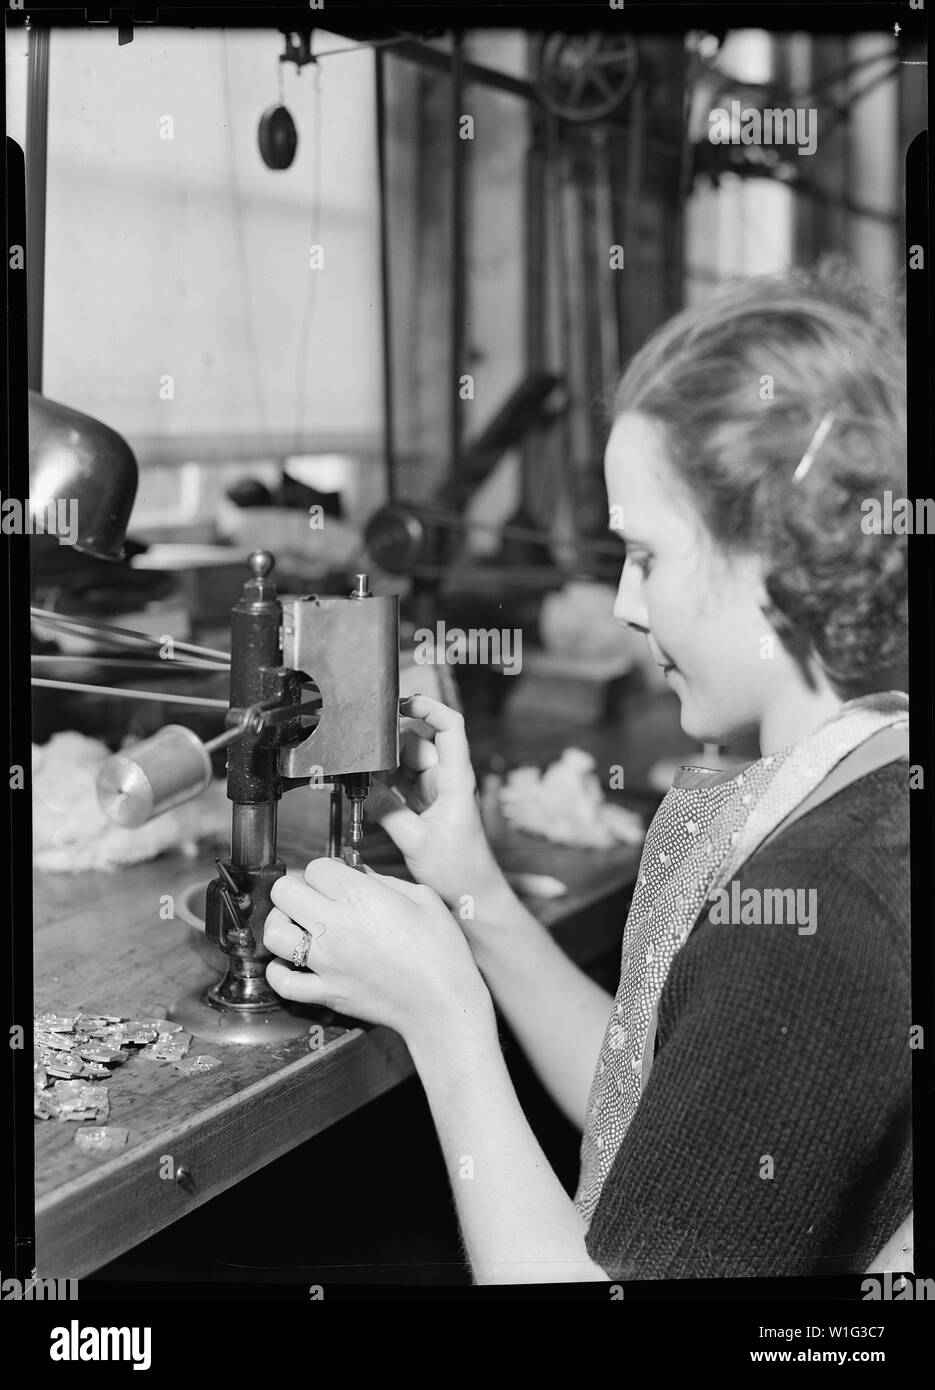 Lancaster, Pennsylvania - Hamilton Watch . Operation - tapping dial foot - simple operation for threading holes in parts. - Stock Image